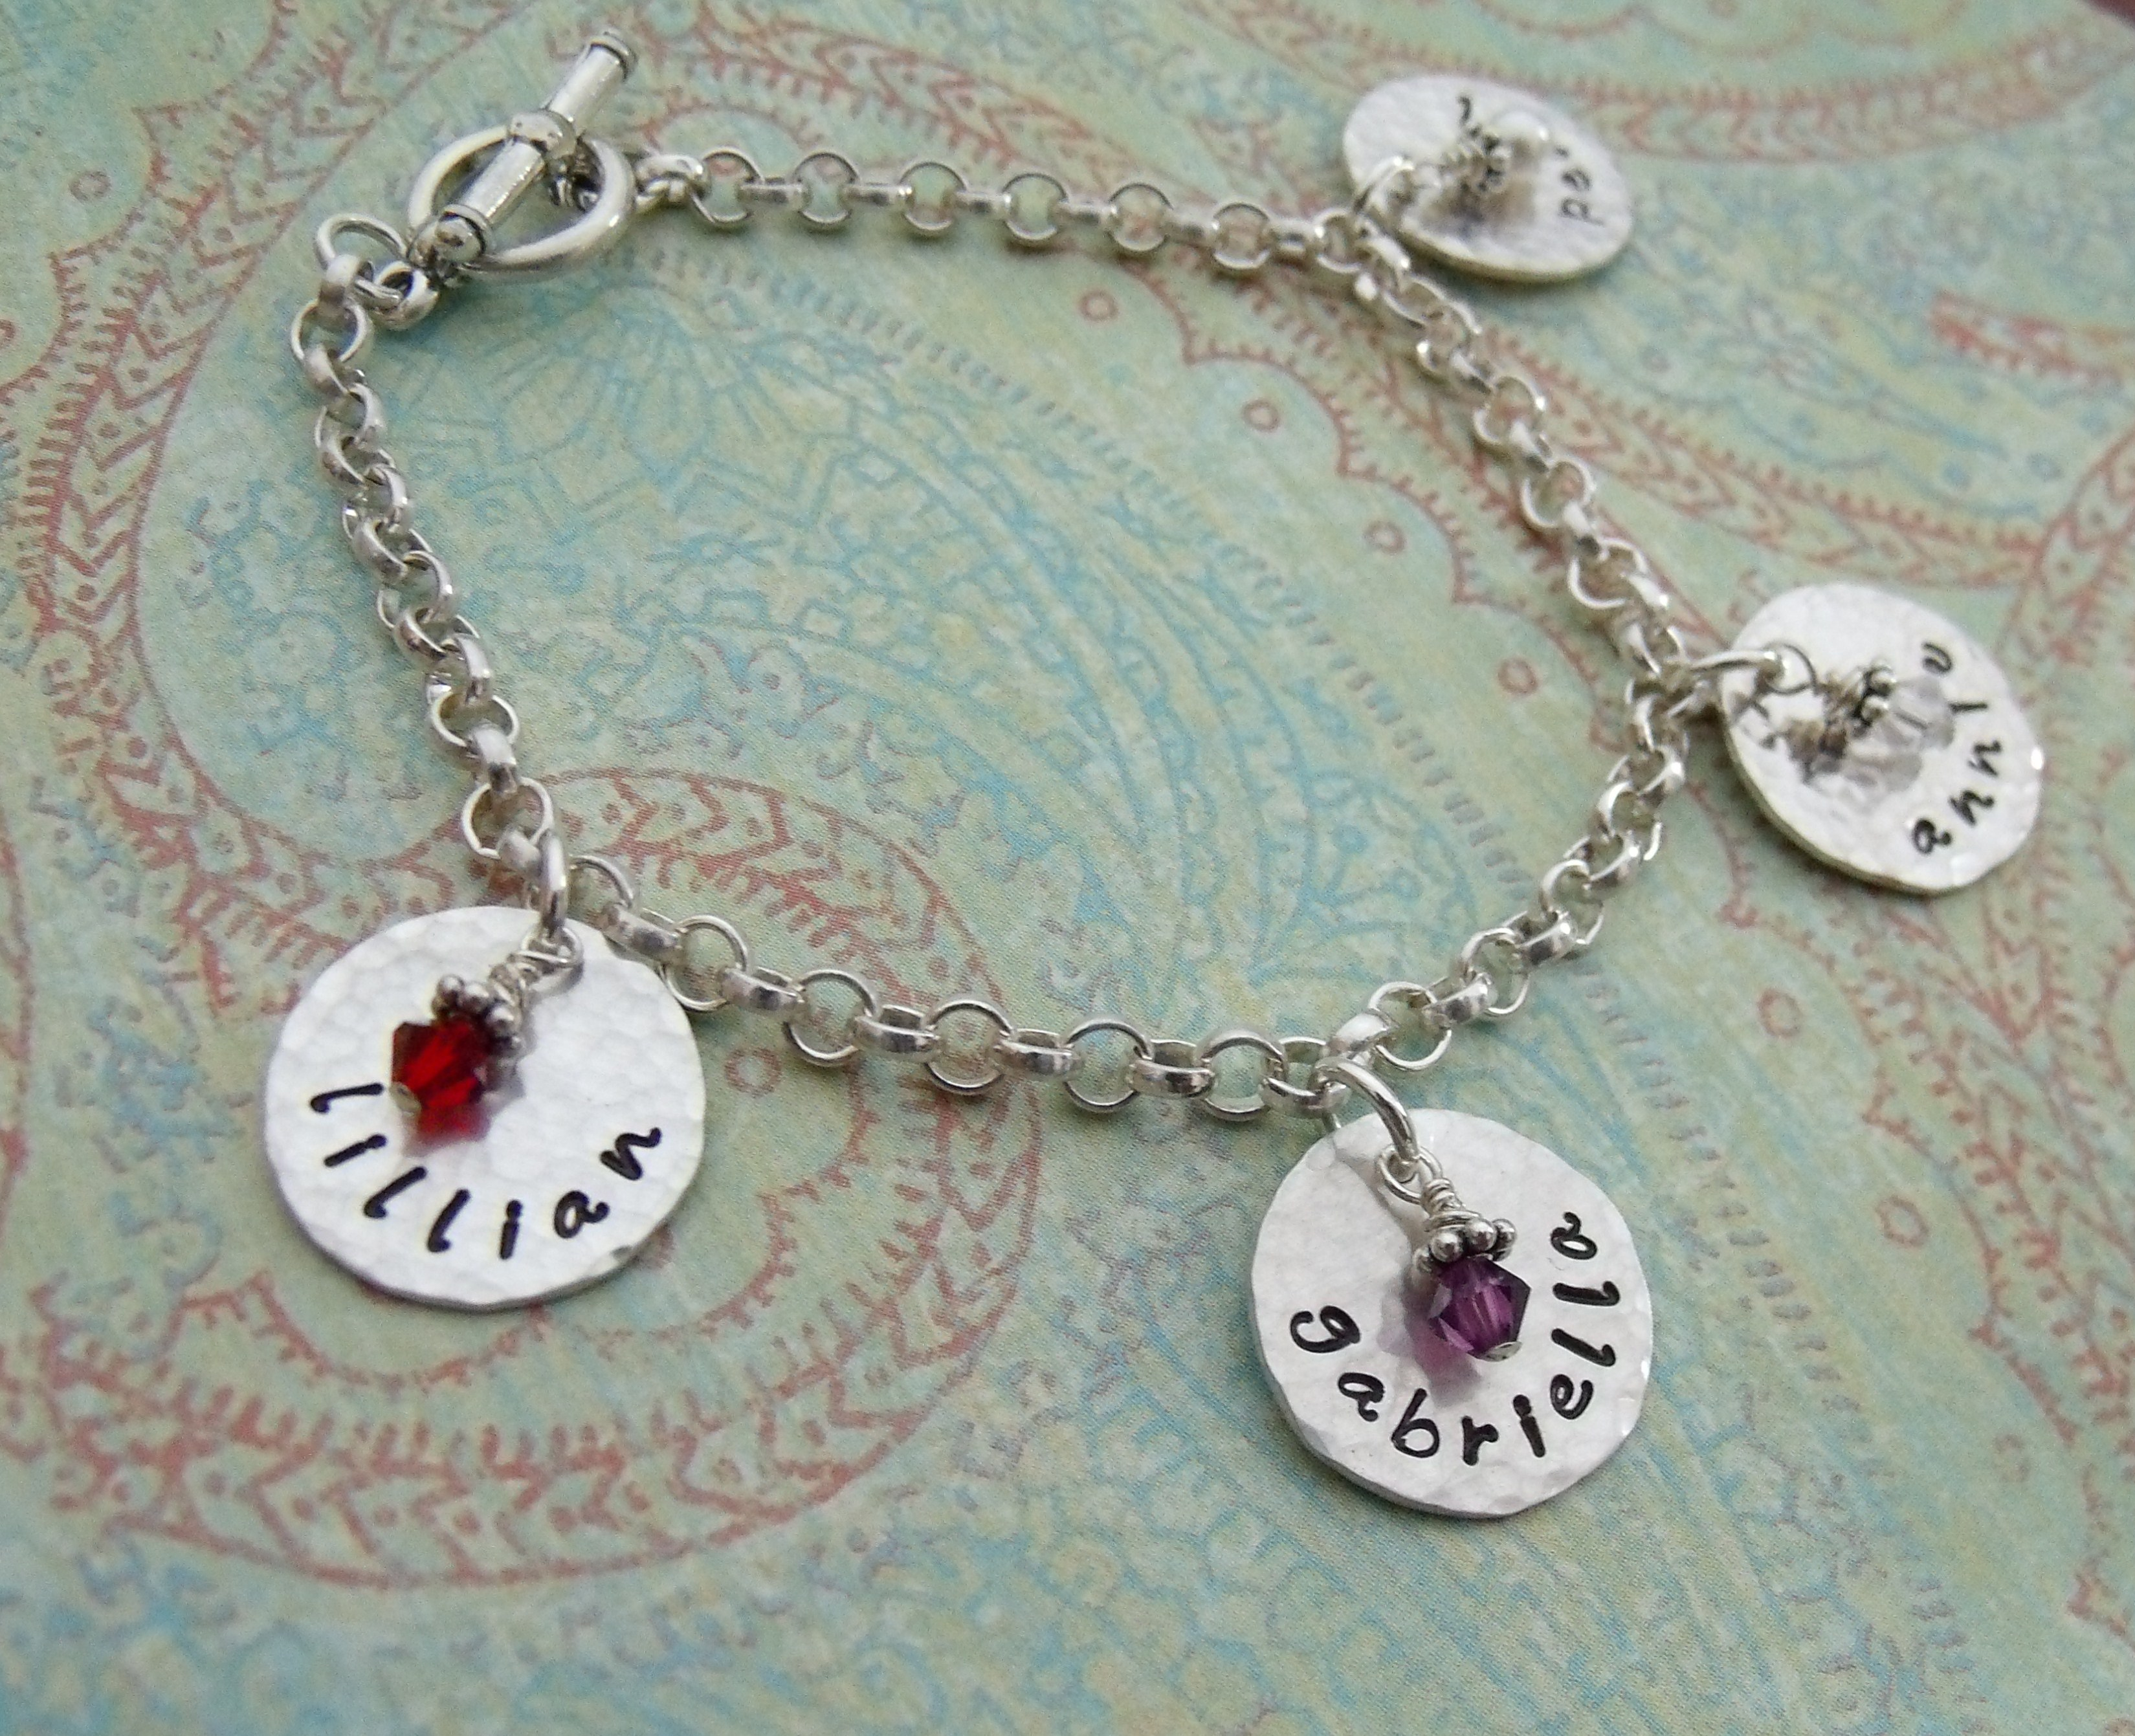 silver img dandelion your stamped journey stardust rounds copy puffs product hand domed with trust amethyst necklace